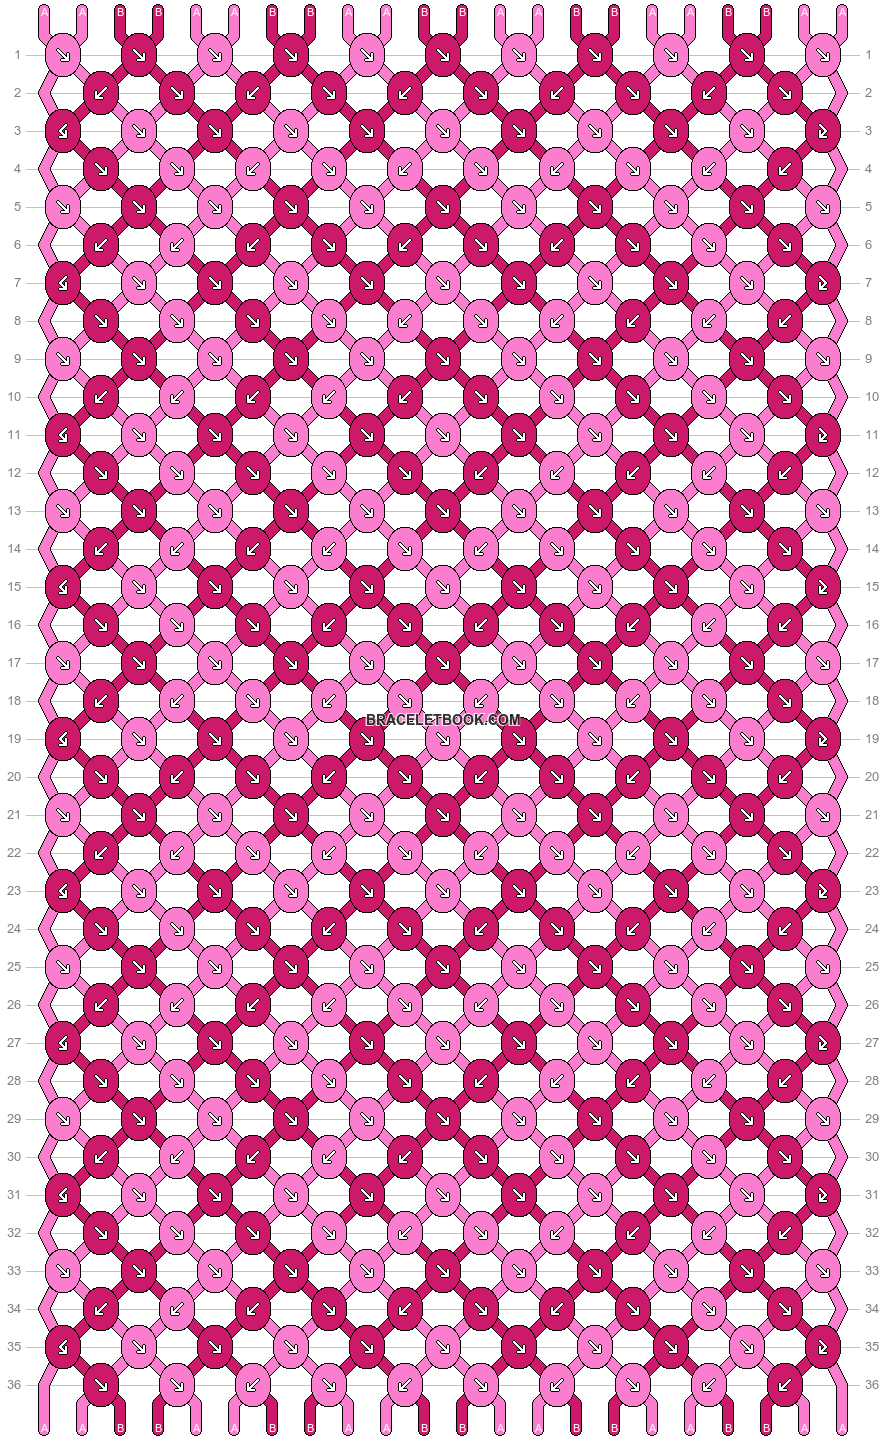 Normal Pattern #22261 added by LittleDog